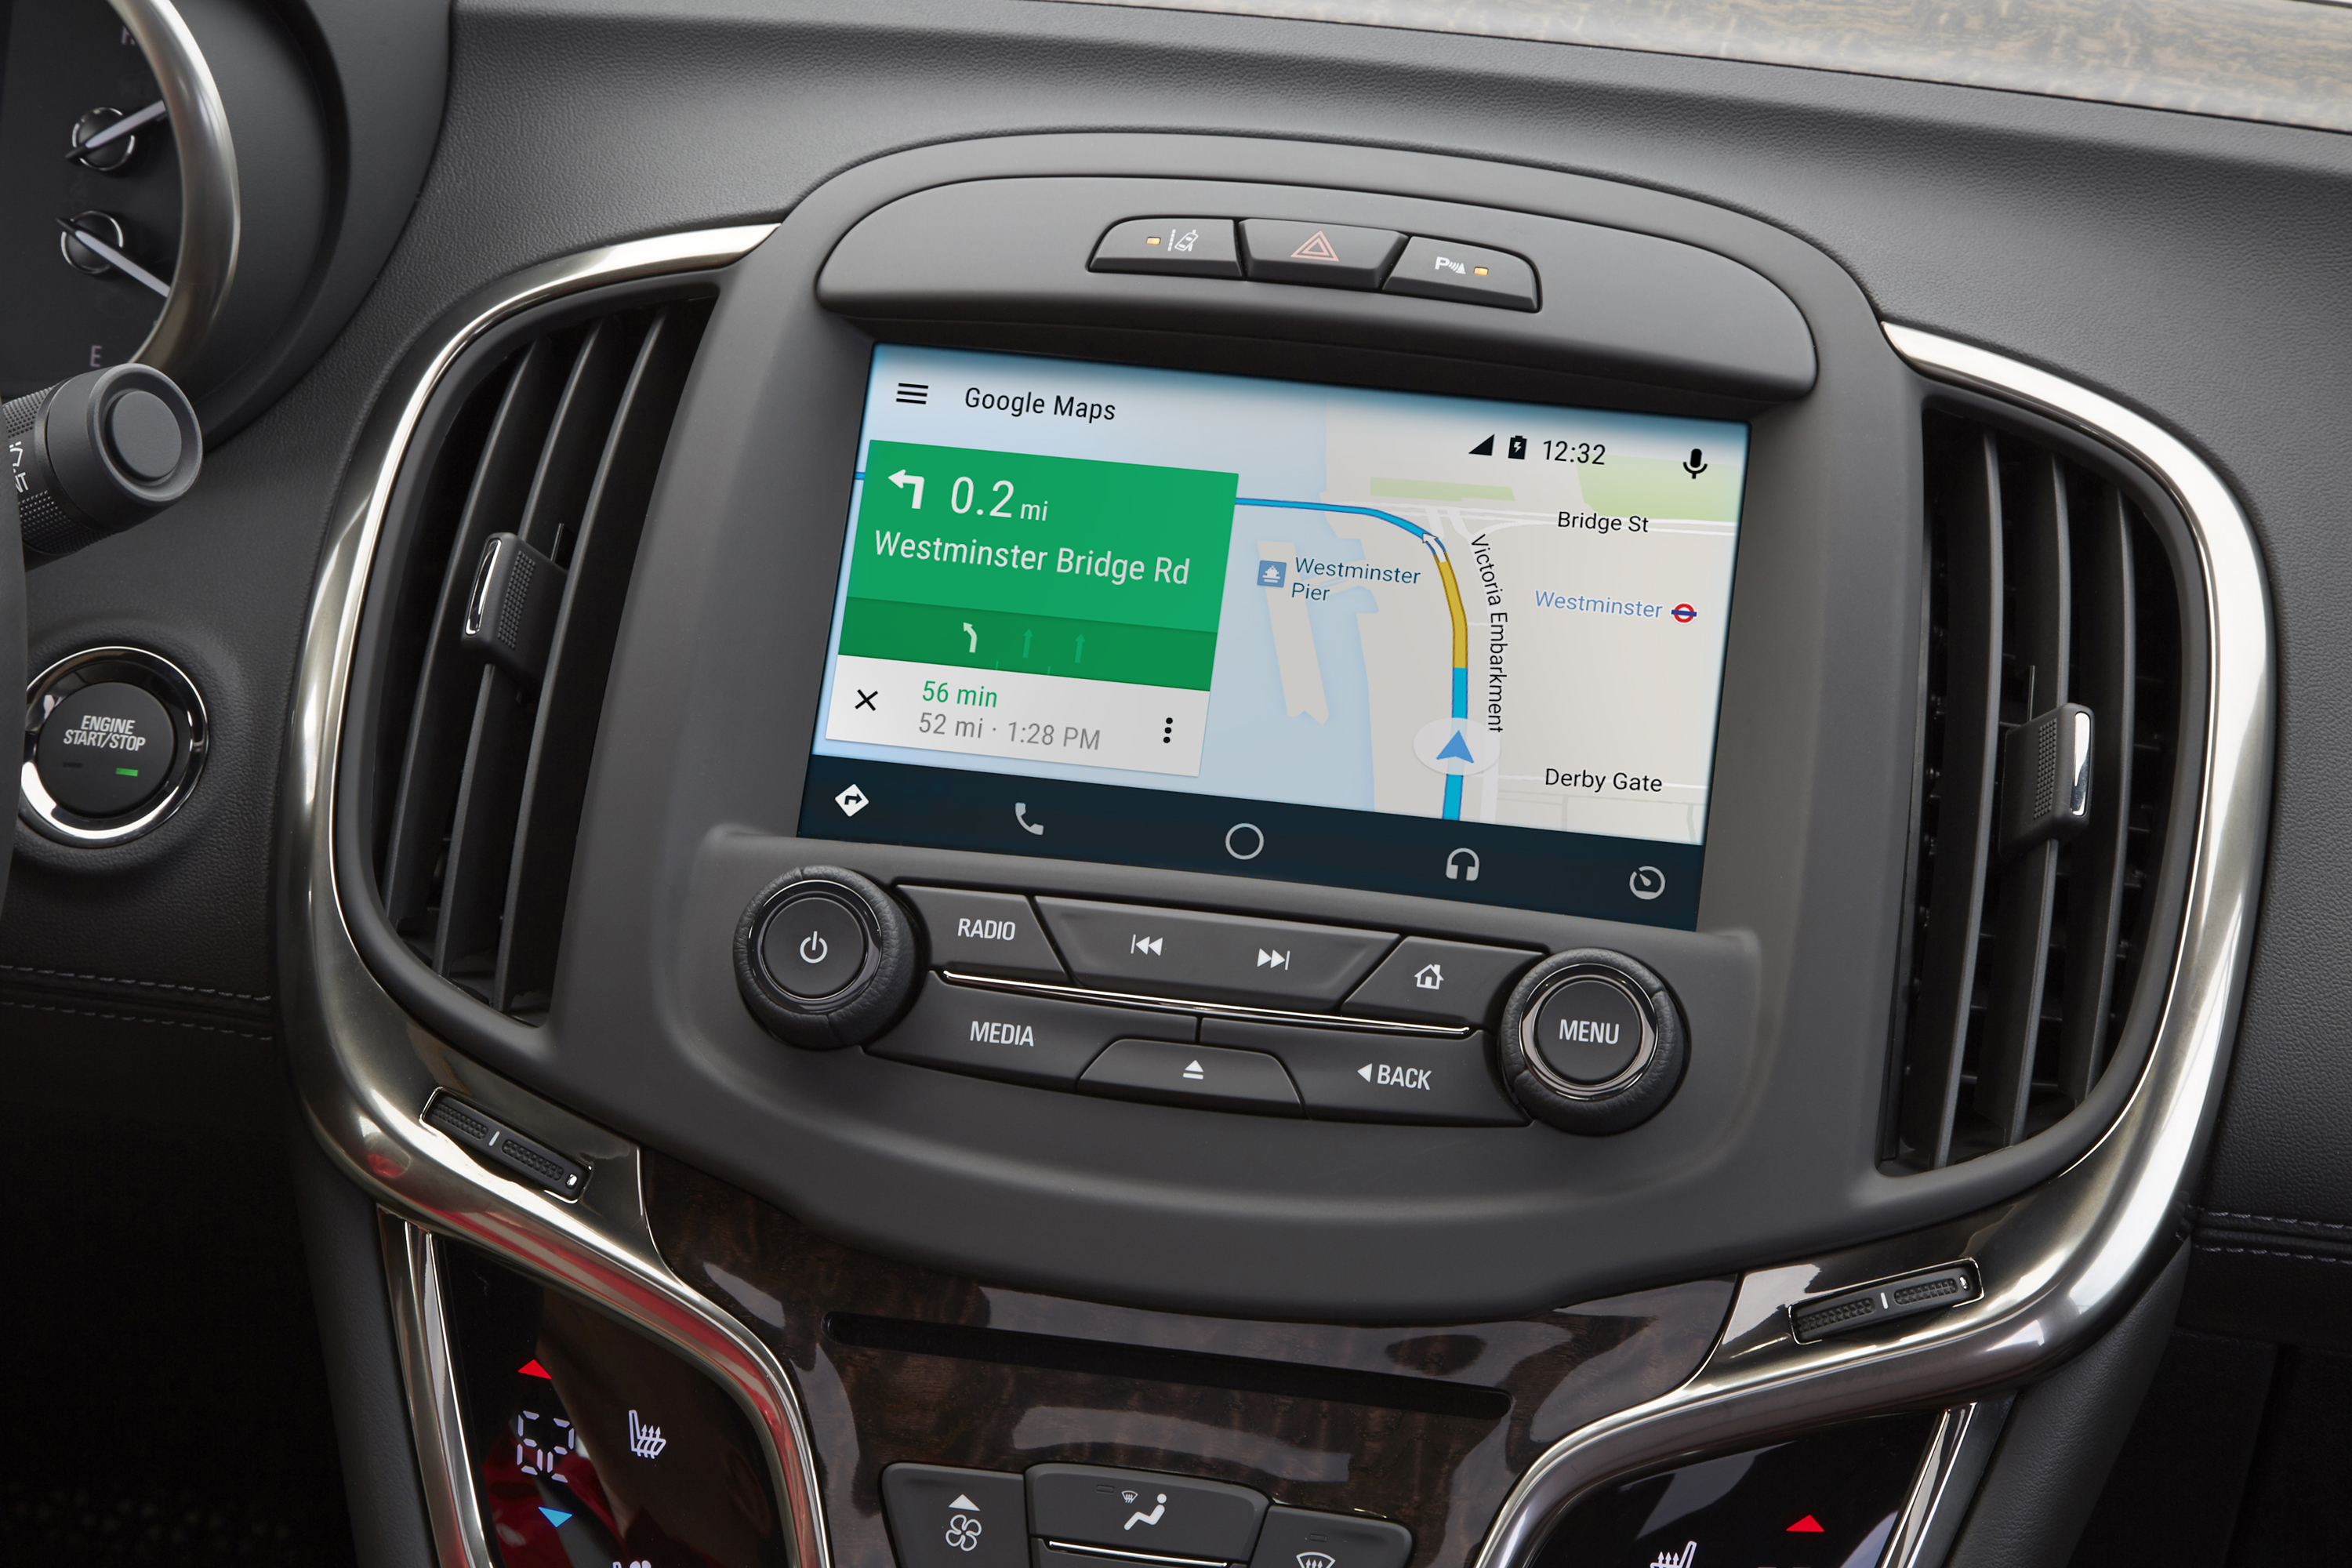 news wire 2016 buick regal lacrosse get android auto update ozzie. Black Bedroom Furniture Sets. Home Design Ideas